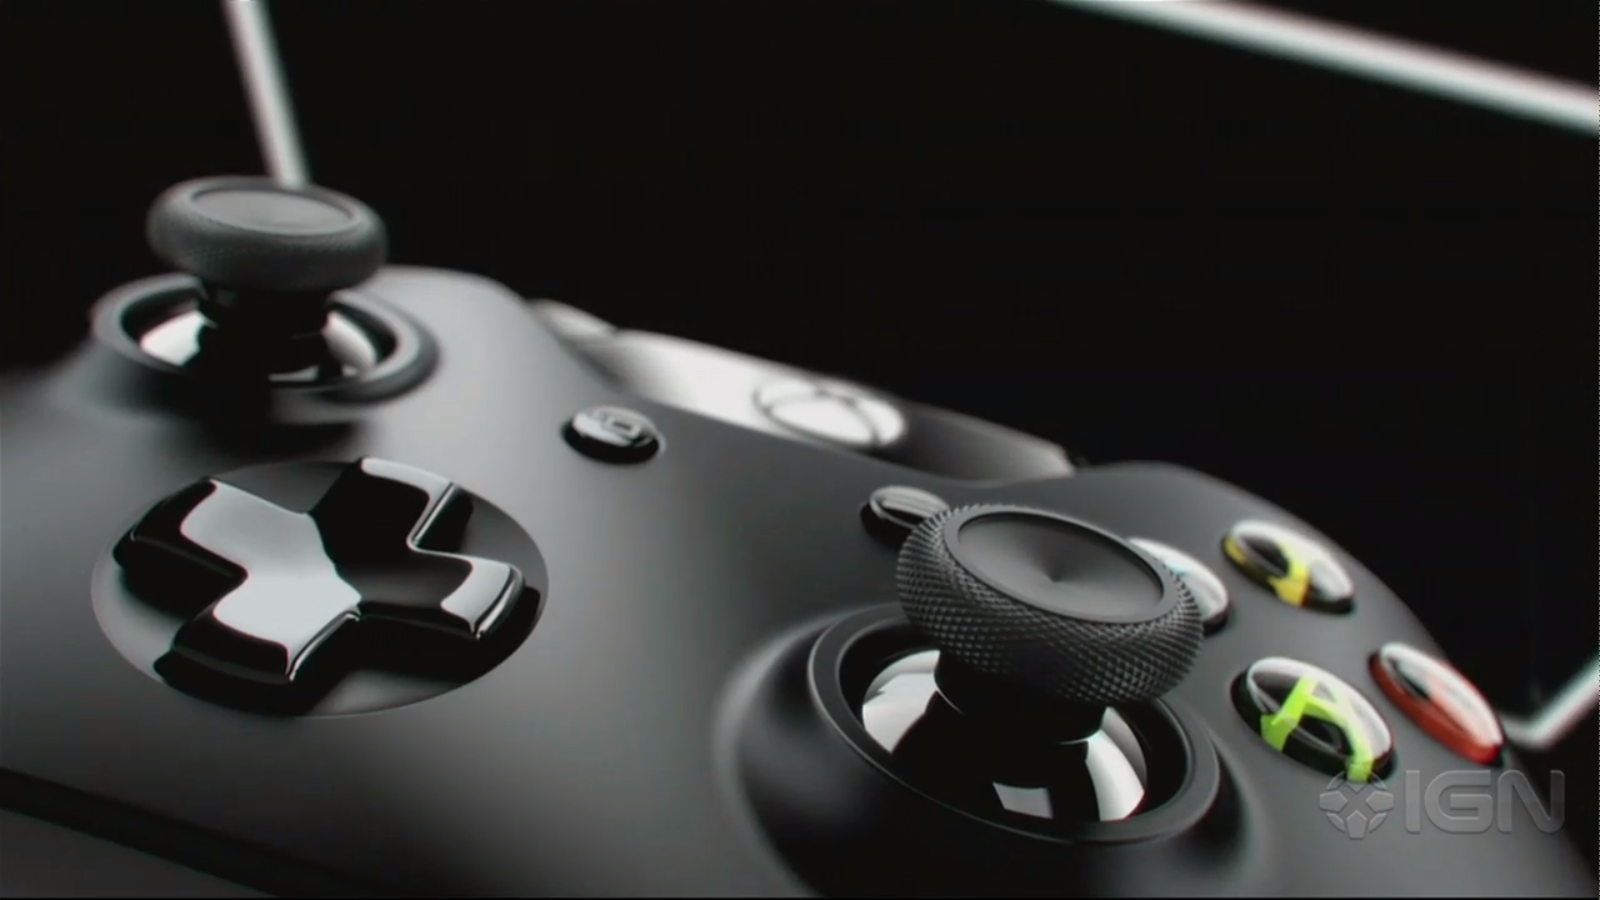 Xbox One Wallpaper | Free Xbox One | Microsoft | Gamers | free online games  | New Xbox one | bestscreenwallpaper pluspng.com | #9 - Xbox HD PNG